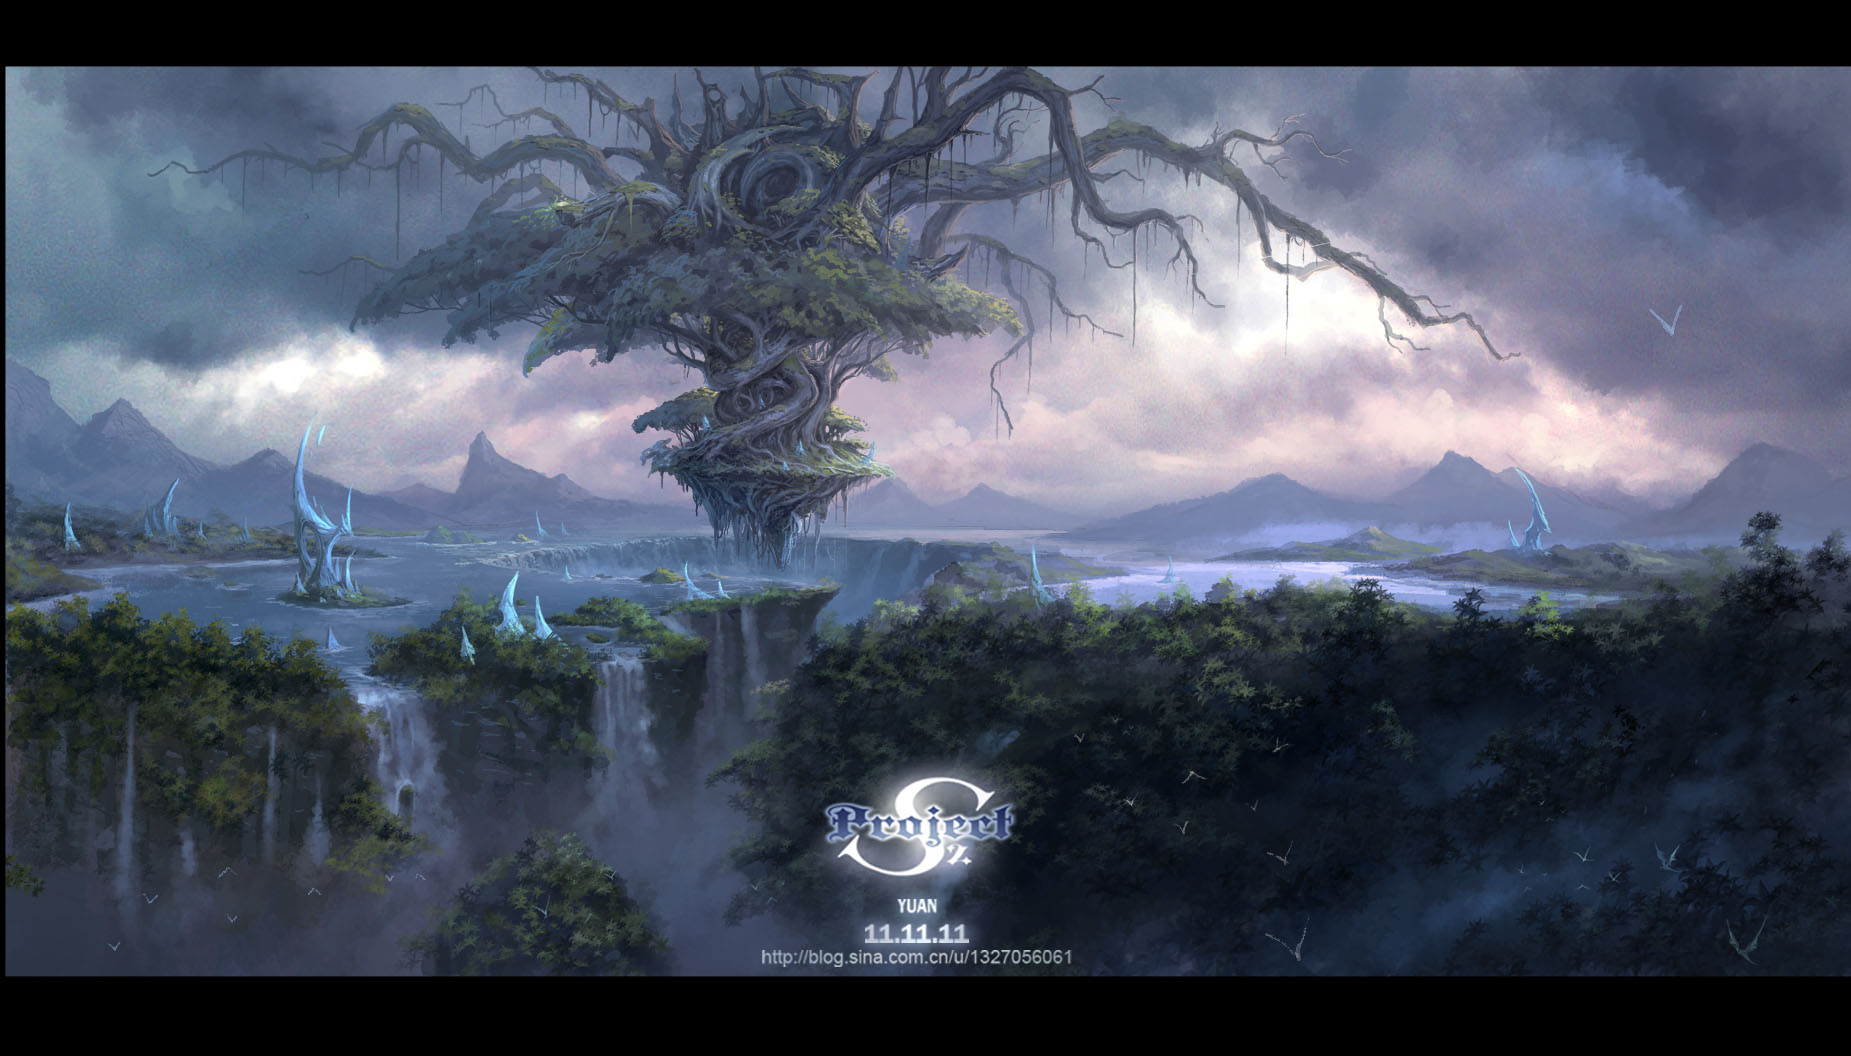 Kingdom of the Forests by ChaoyuanXu